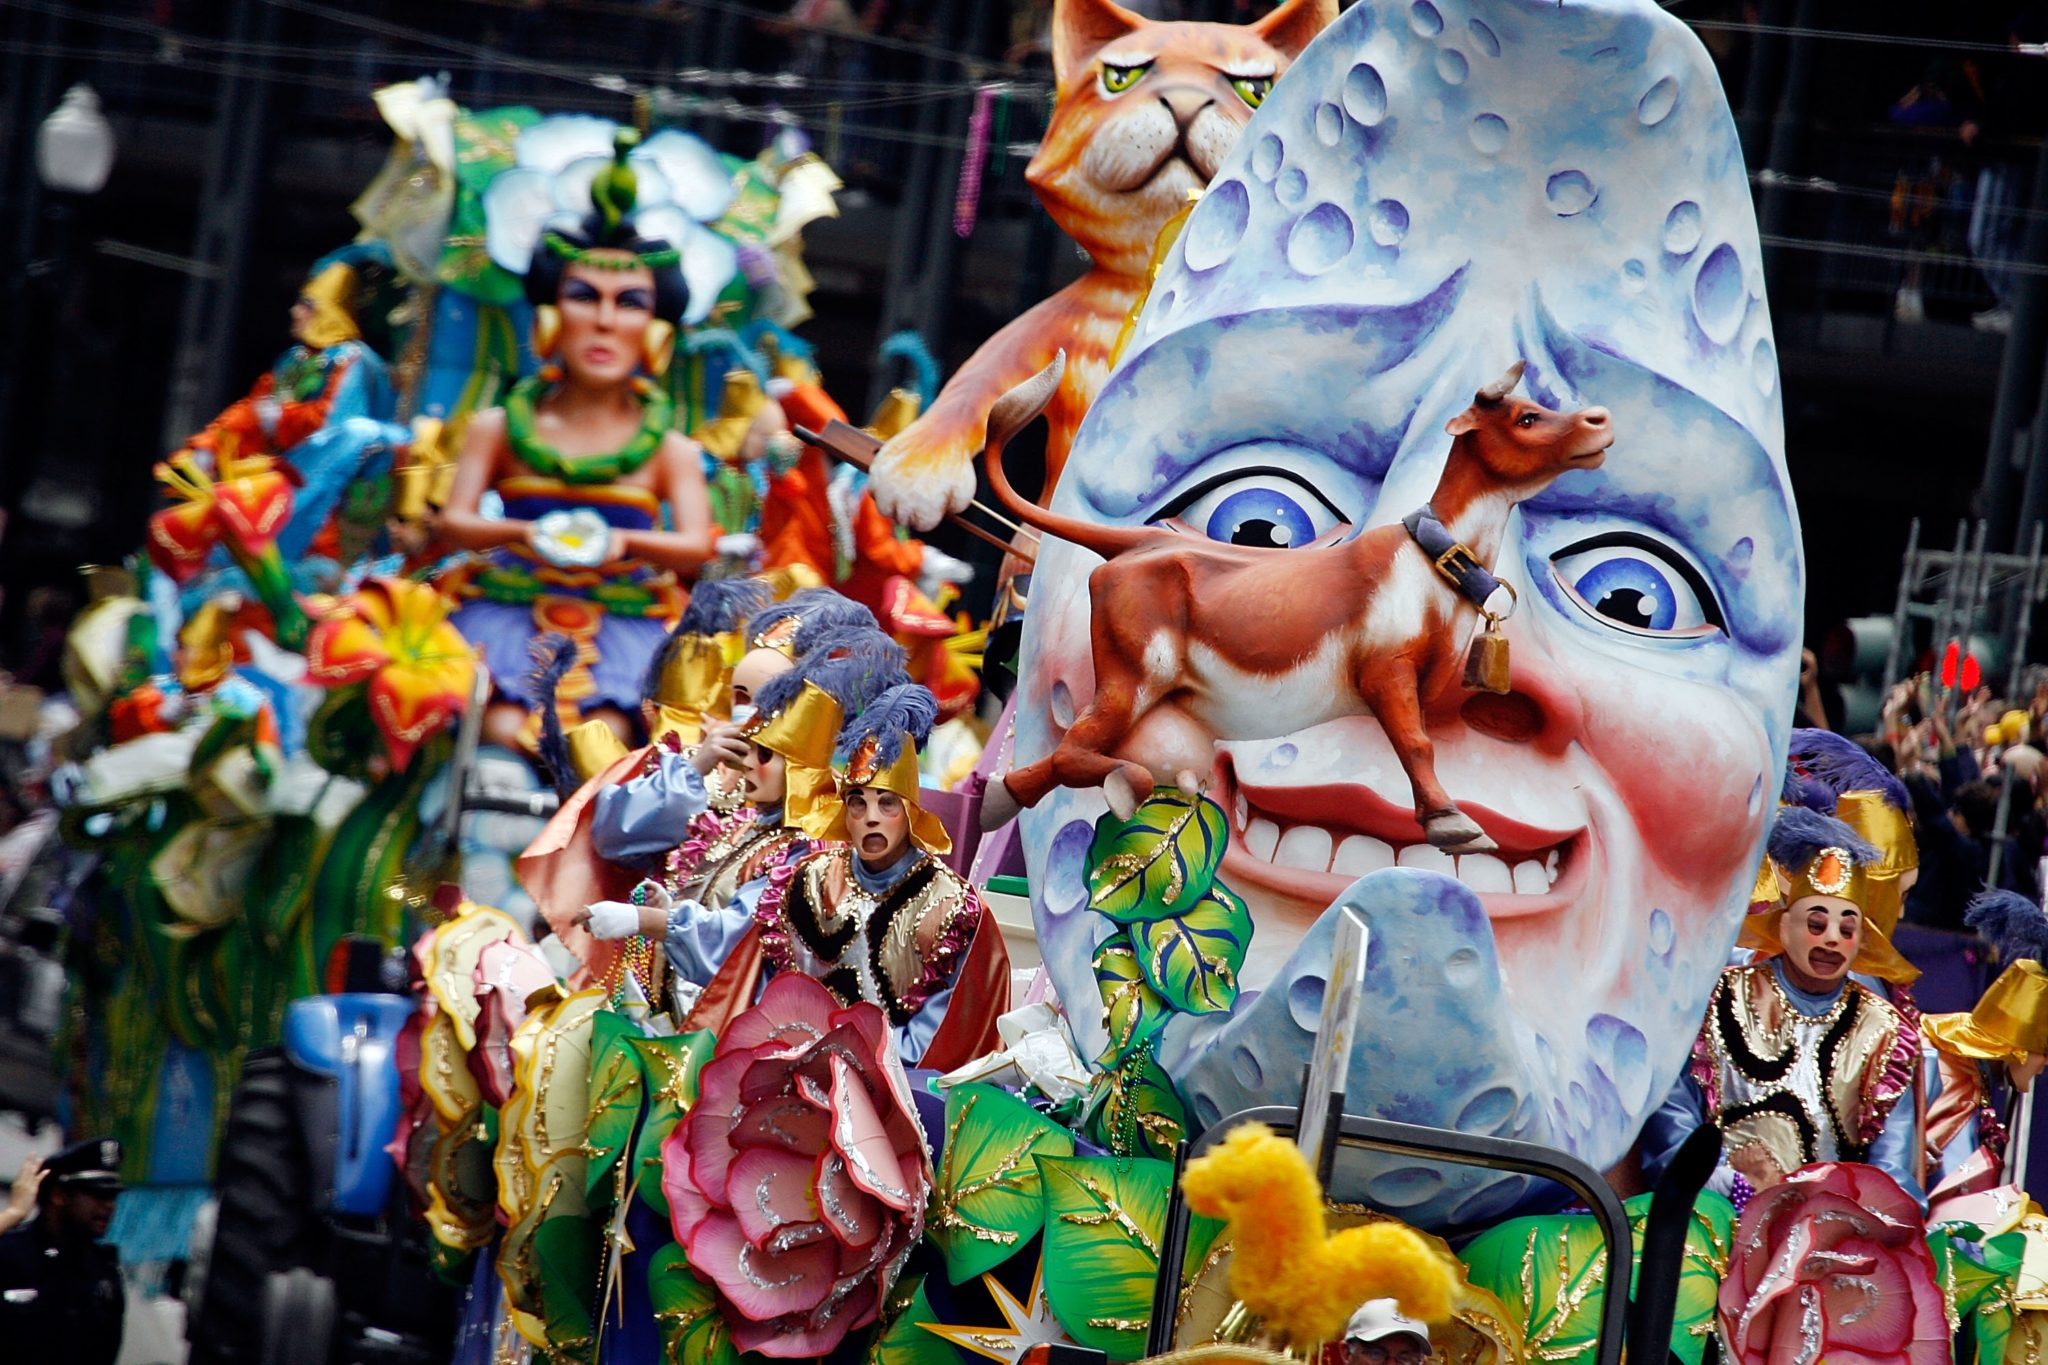 New Orleans celebrates Mardi Gras